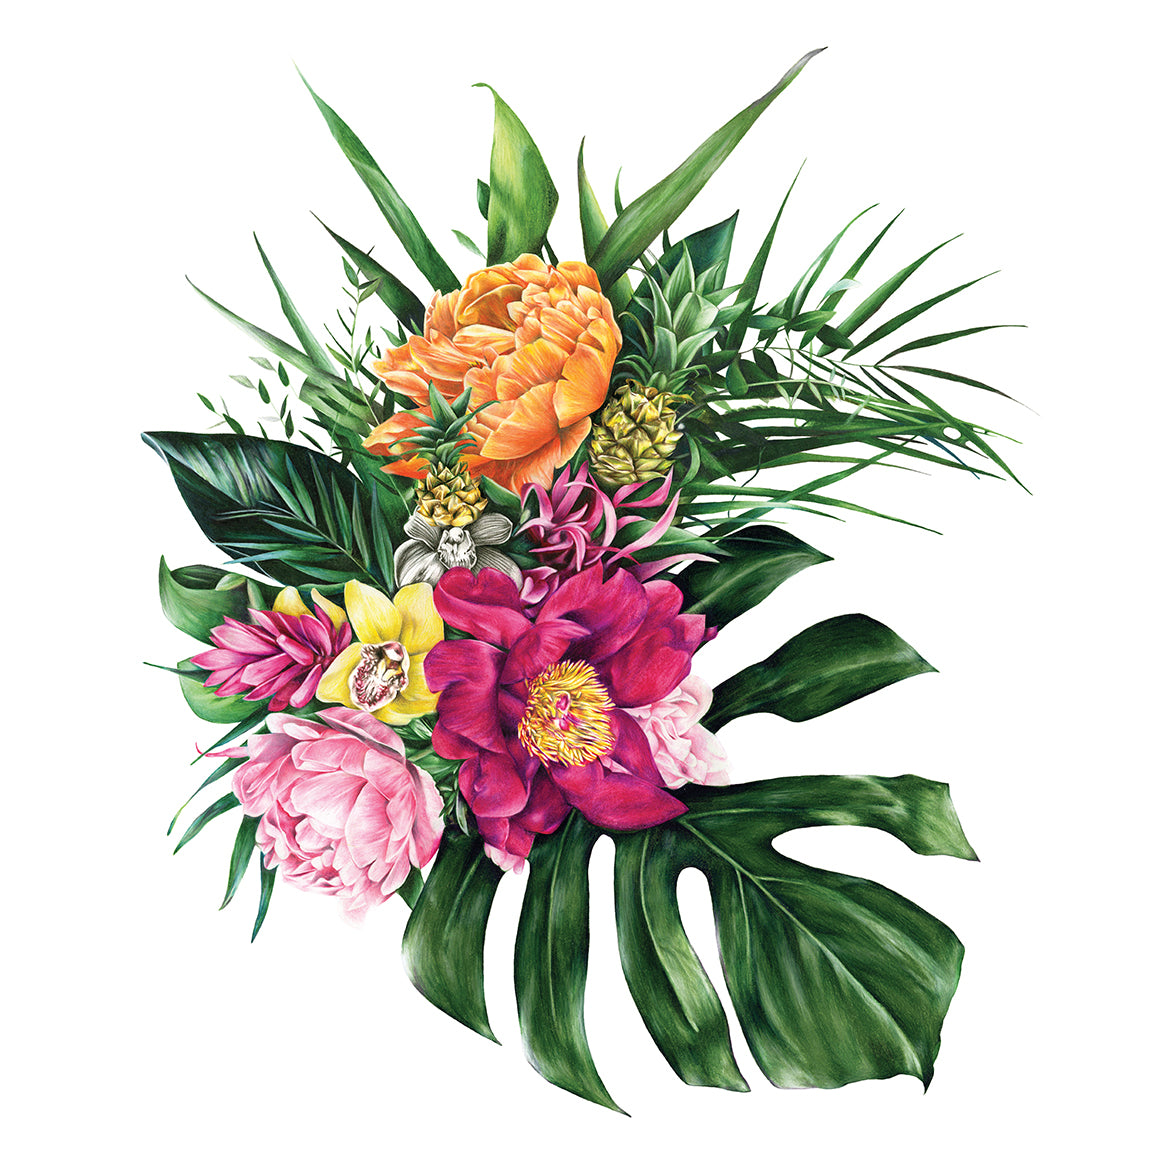 Tropical Florals - Extra Large Print